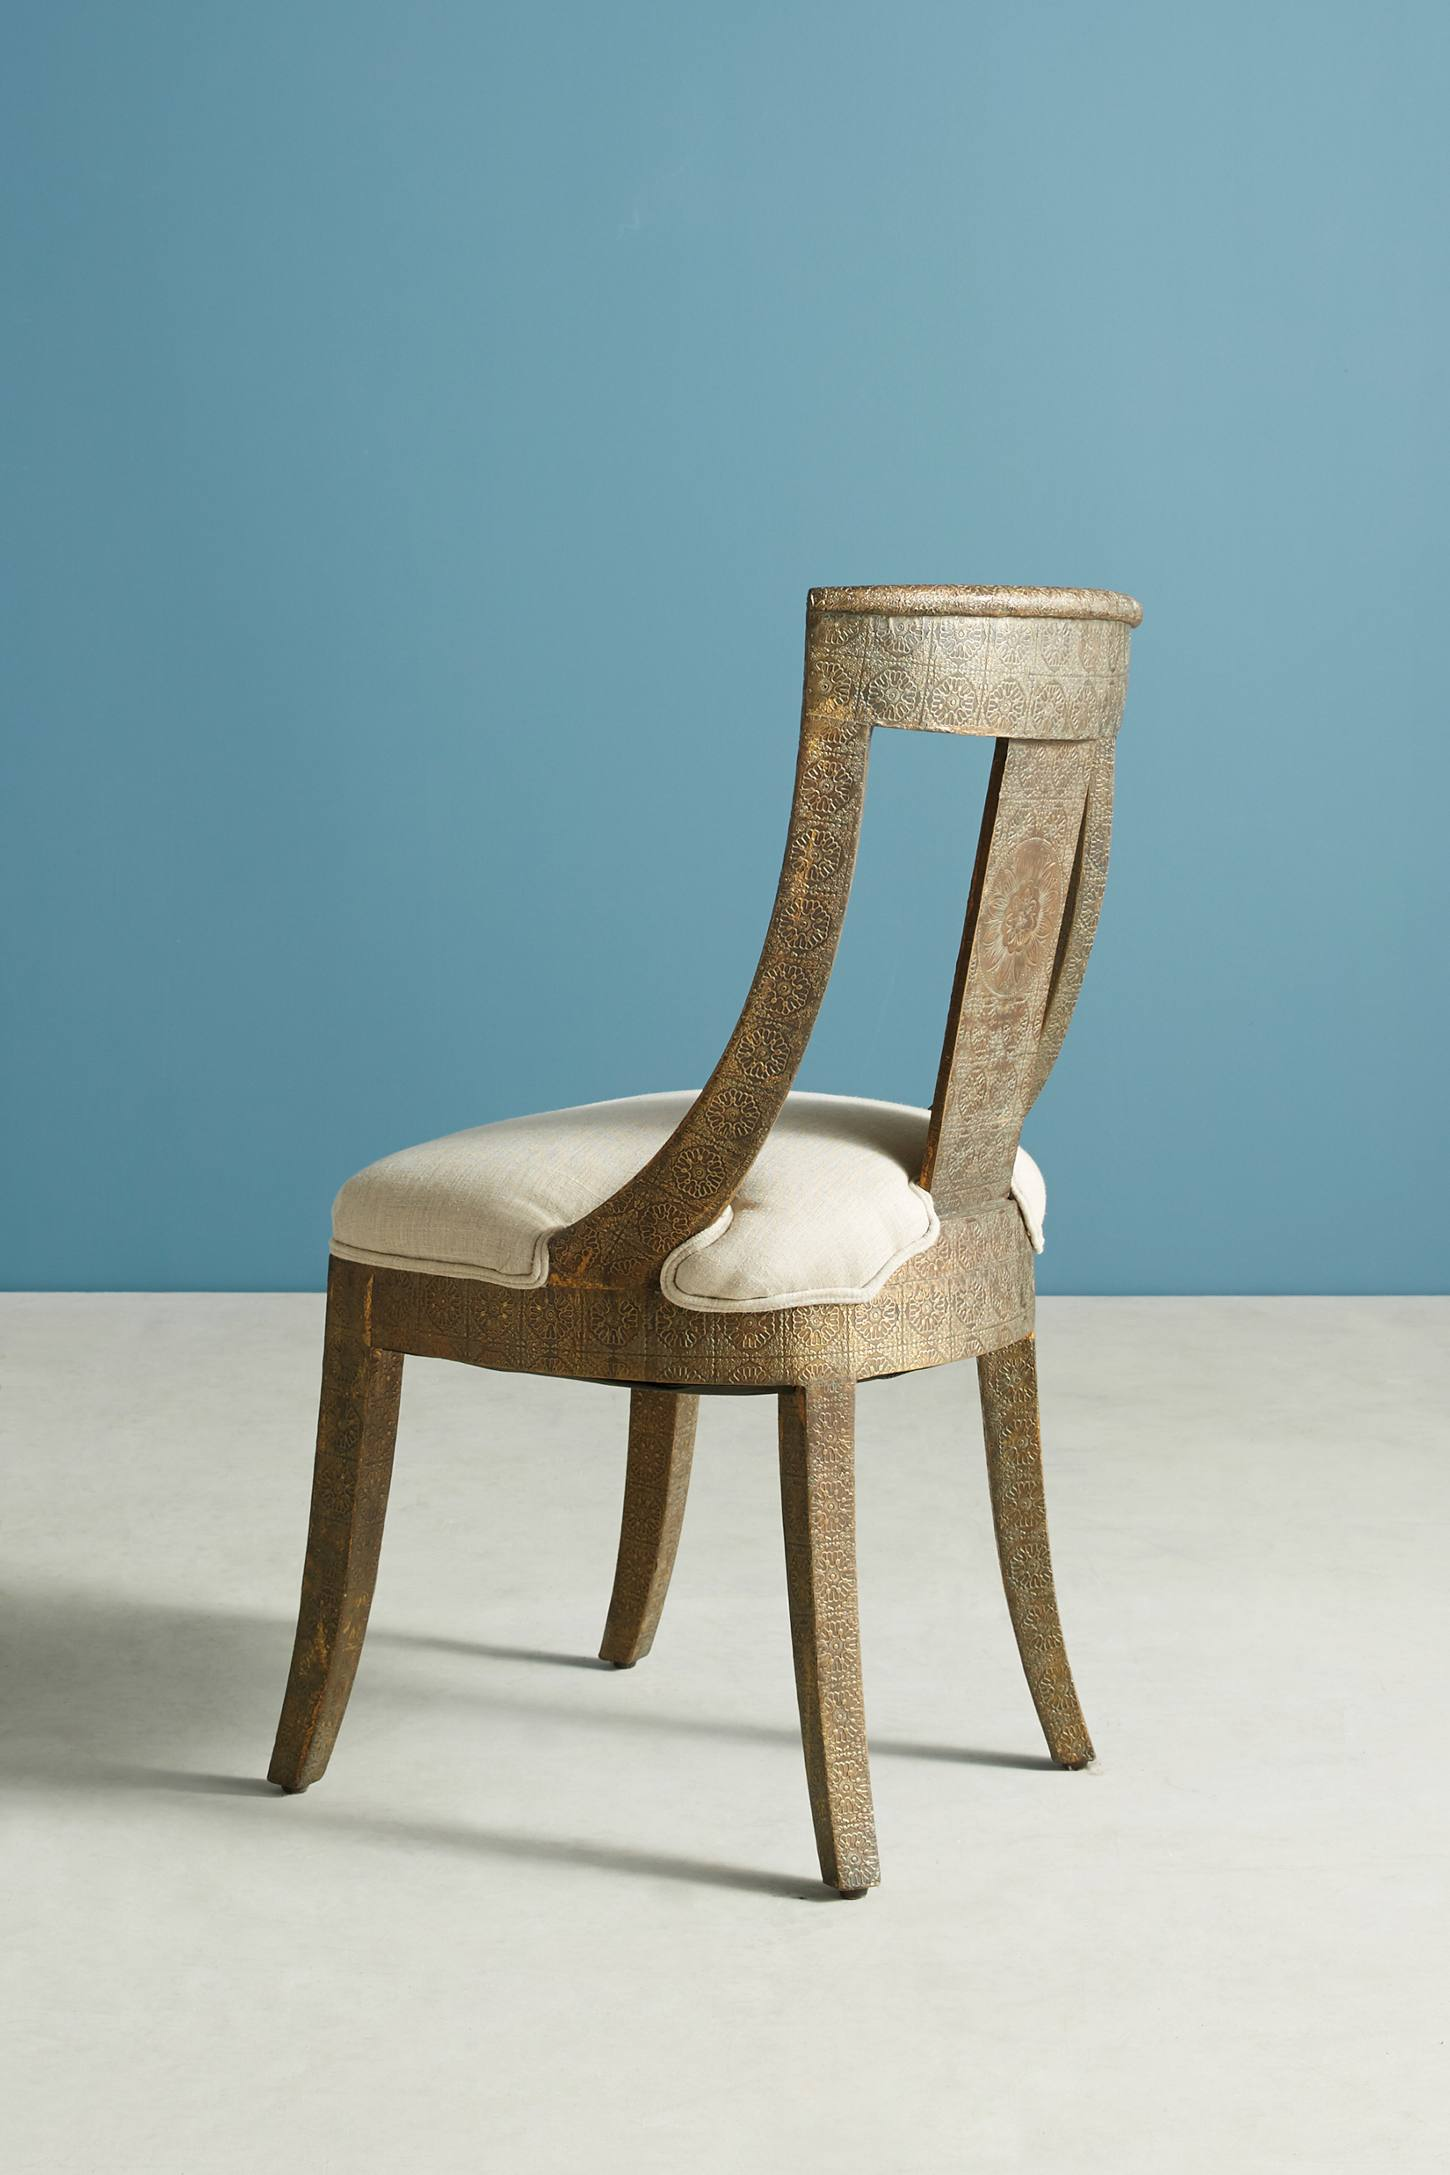 Slide View: 1: Hand-Embossed Dining Chair